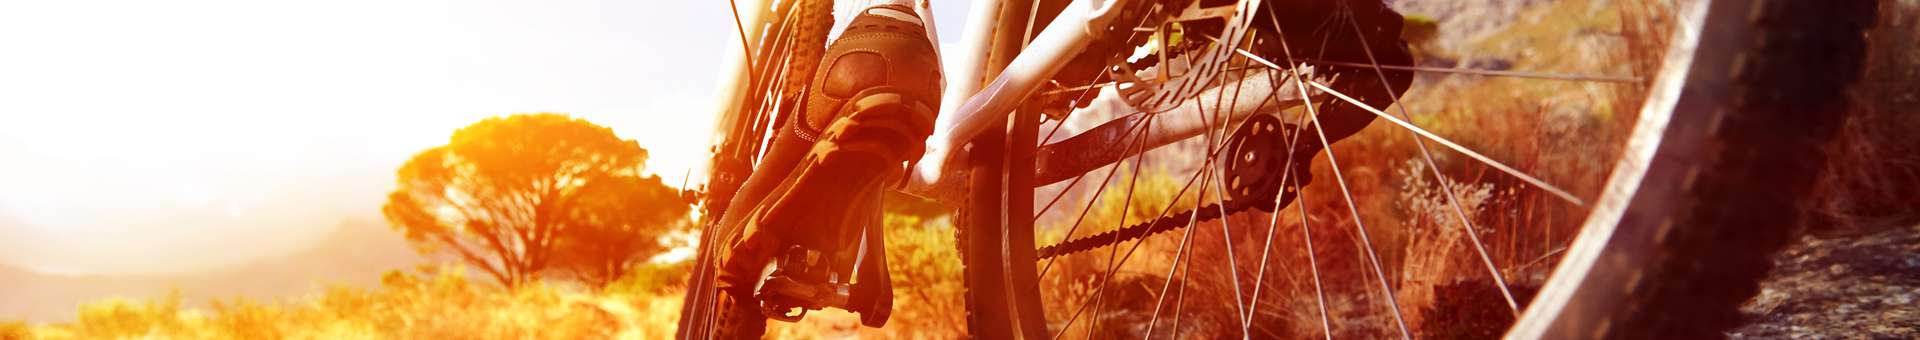 Search Whois information of domain names  .bike